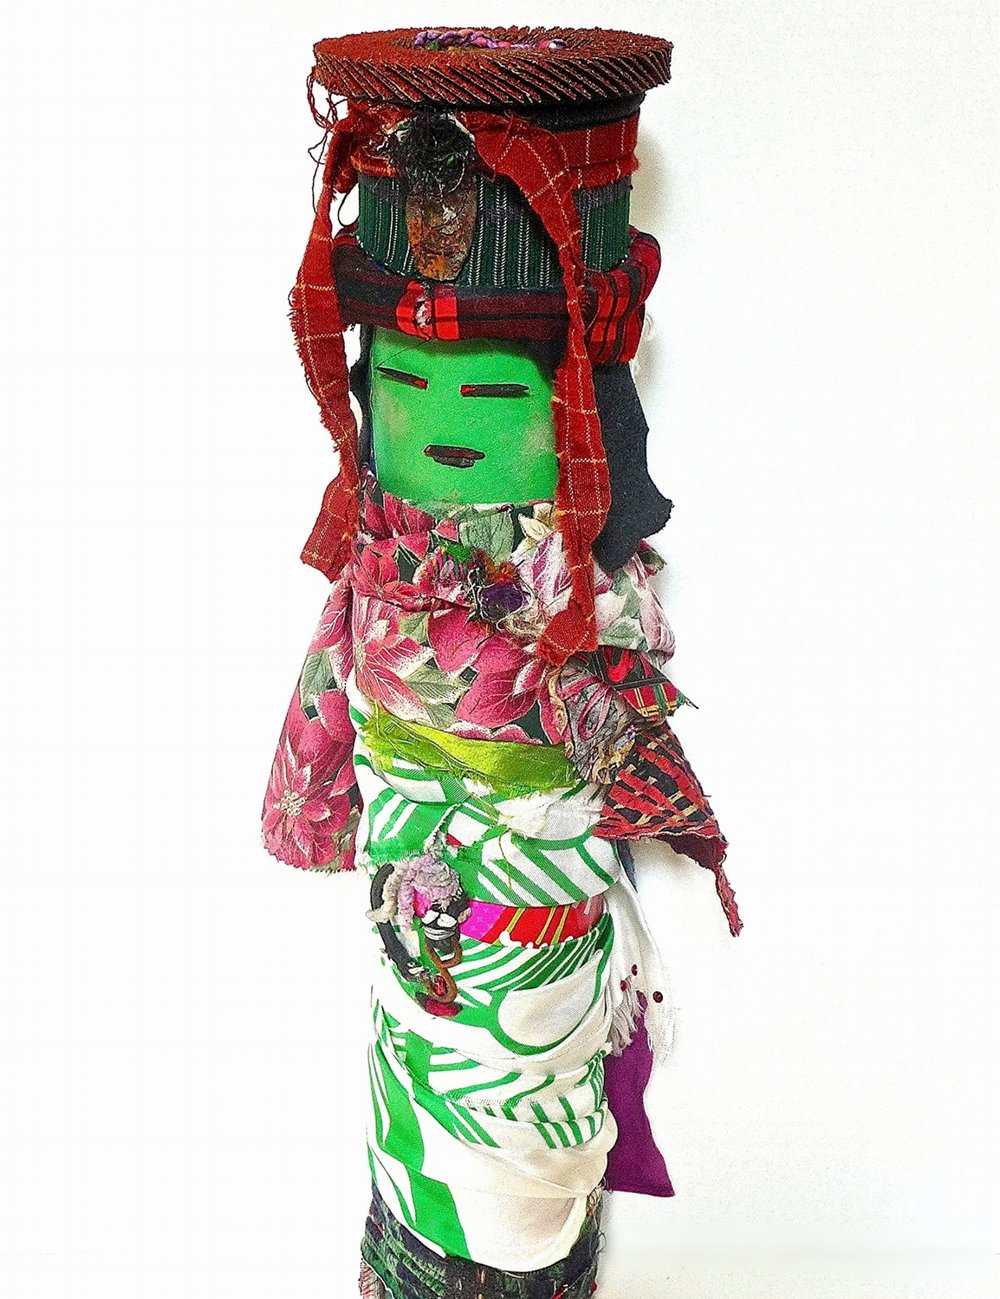 """Green Foreigner   Recycled textiles, rust, sanding disk, paper, yarn, metal, plastic, wood, elastic, glitter, found objects on industrial cardboard tube  22 x 8"""" round  2015"""